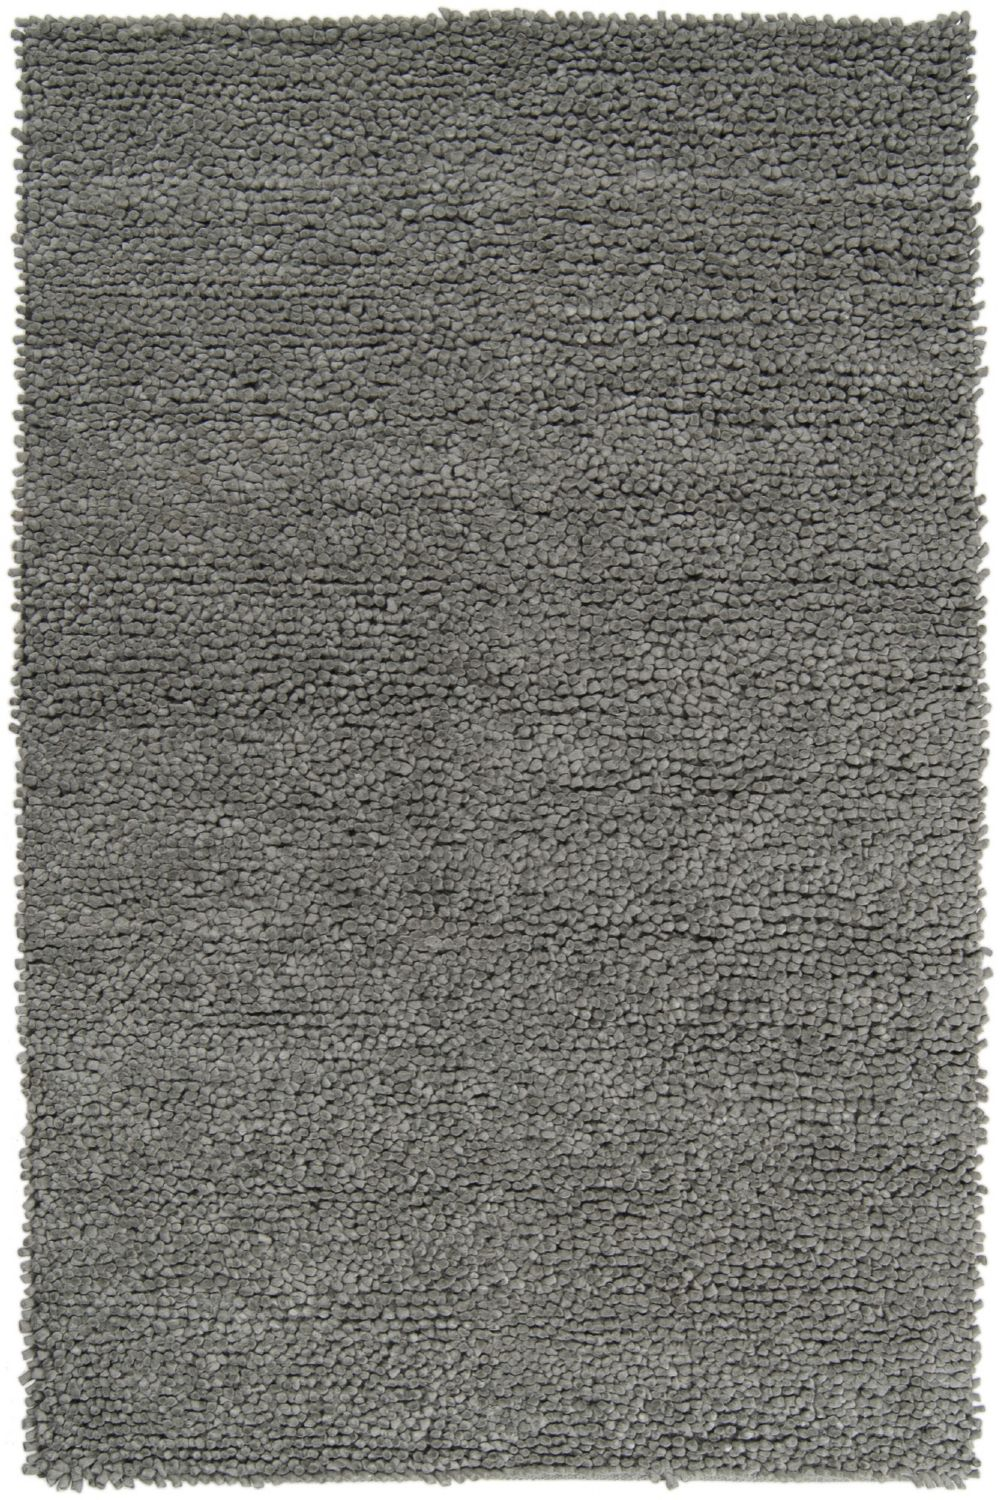 surya cirrus shag area rug collection